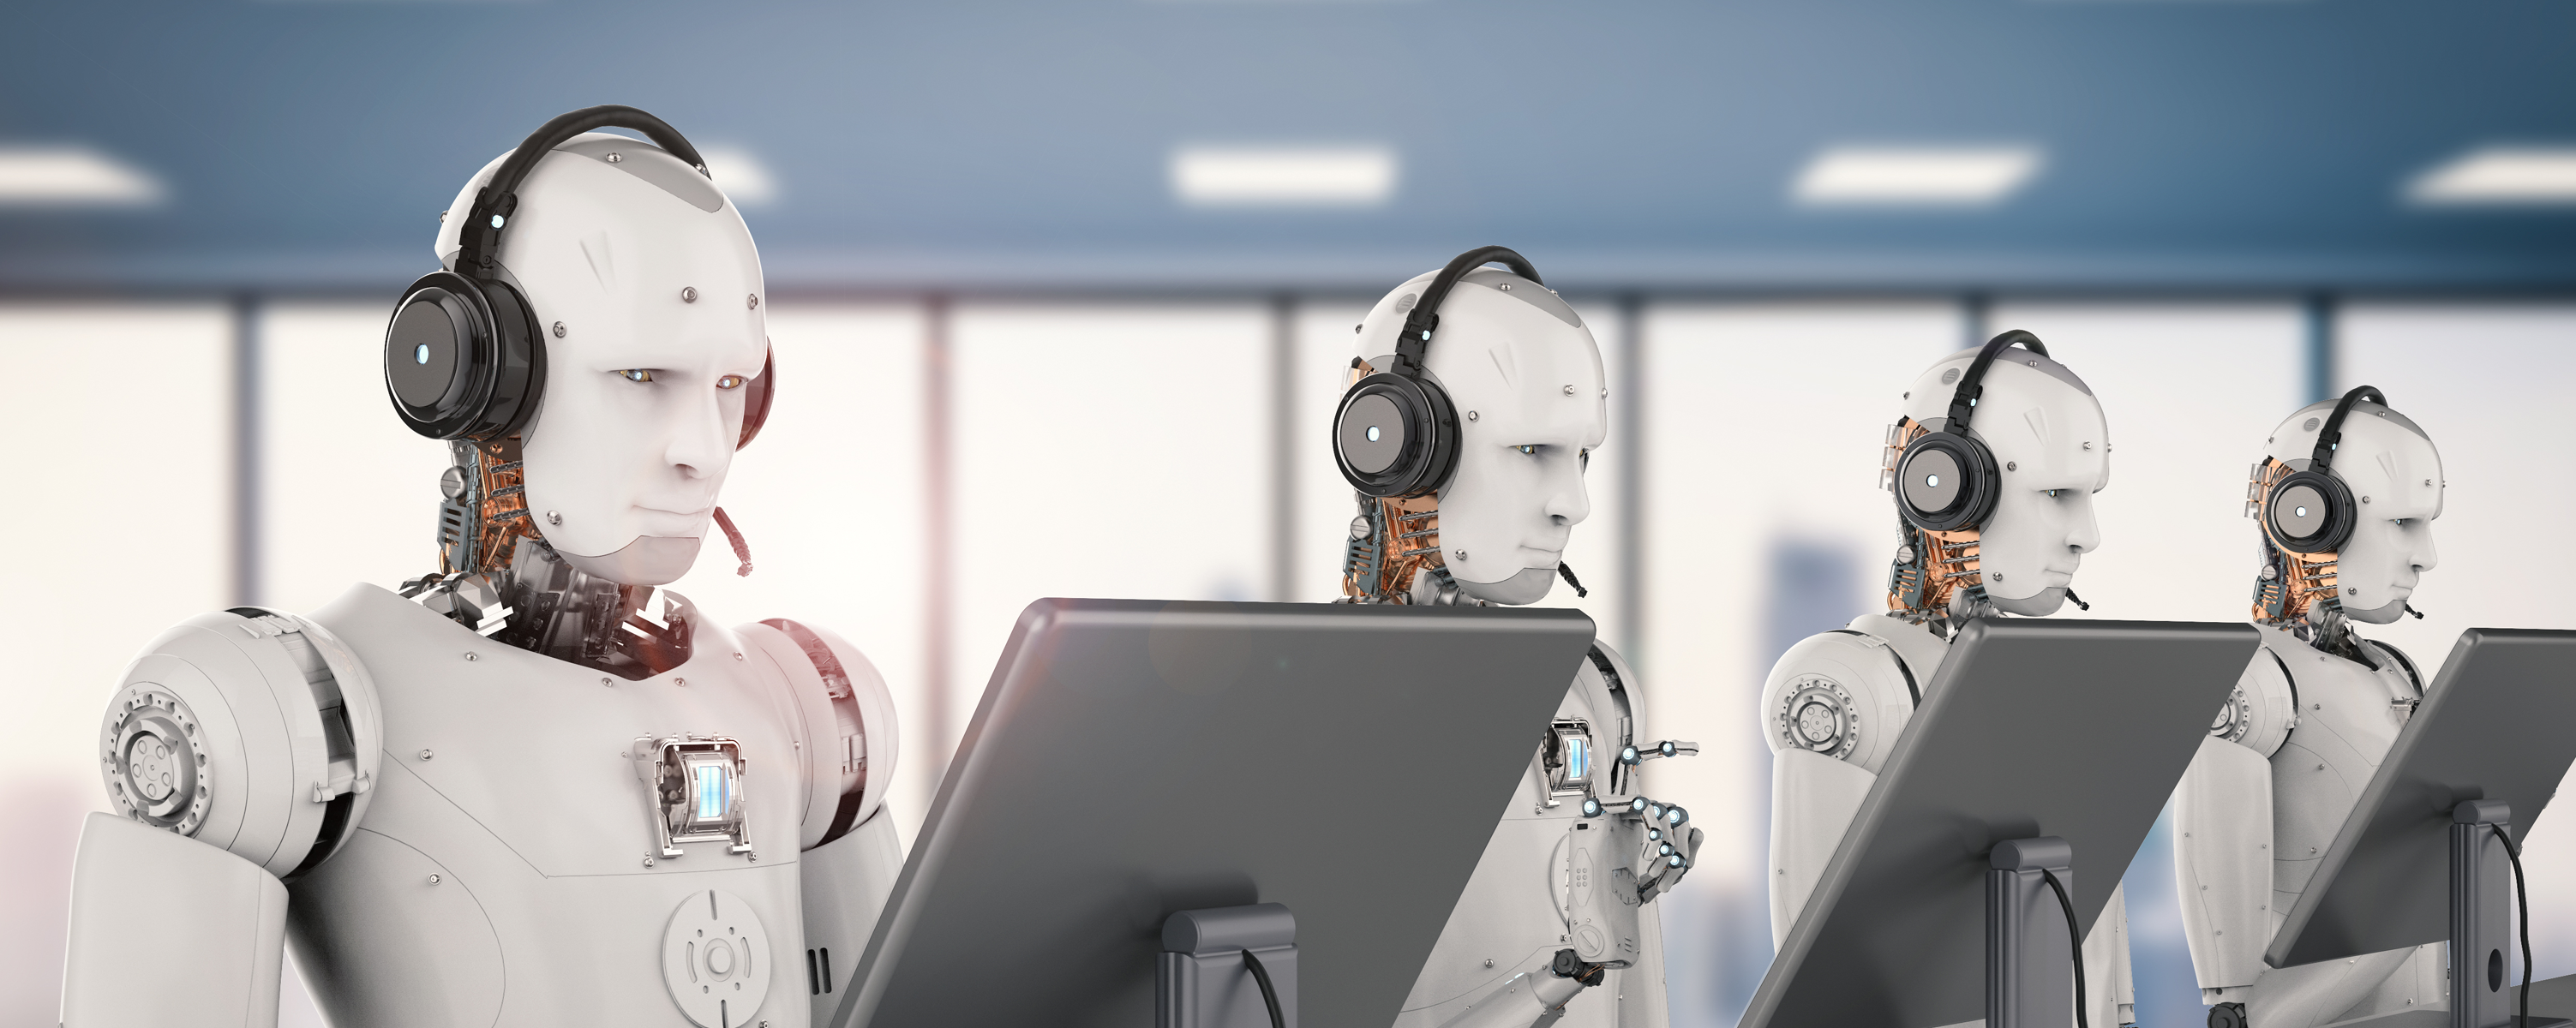 robotic customer care agents working in a call center- Open Access BPO